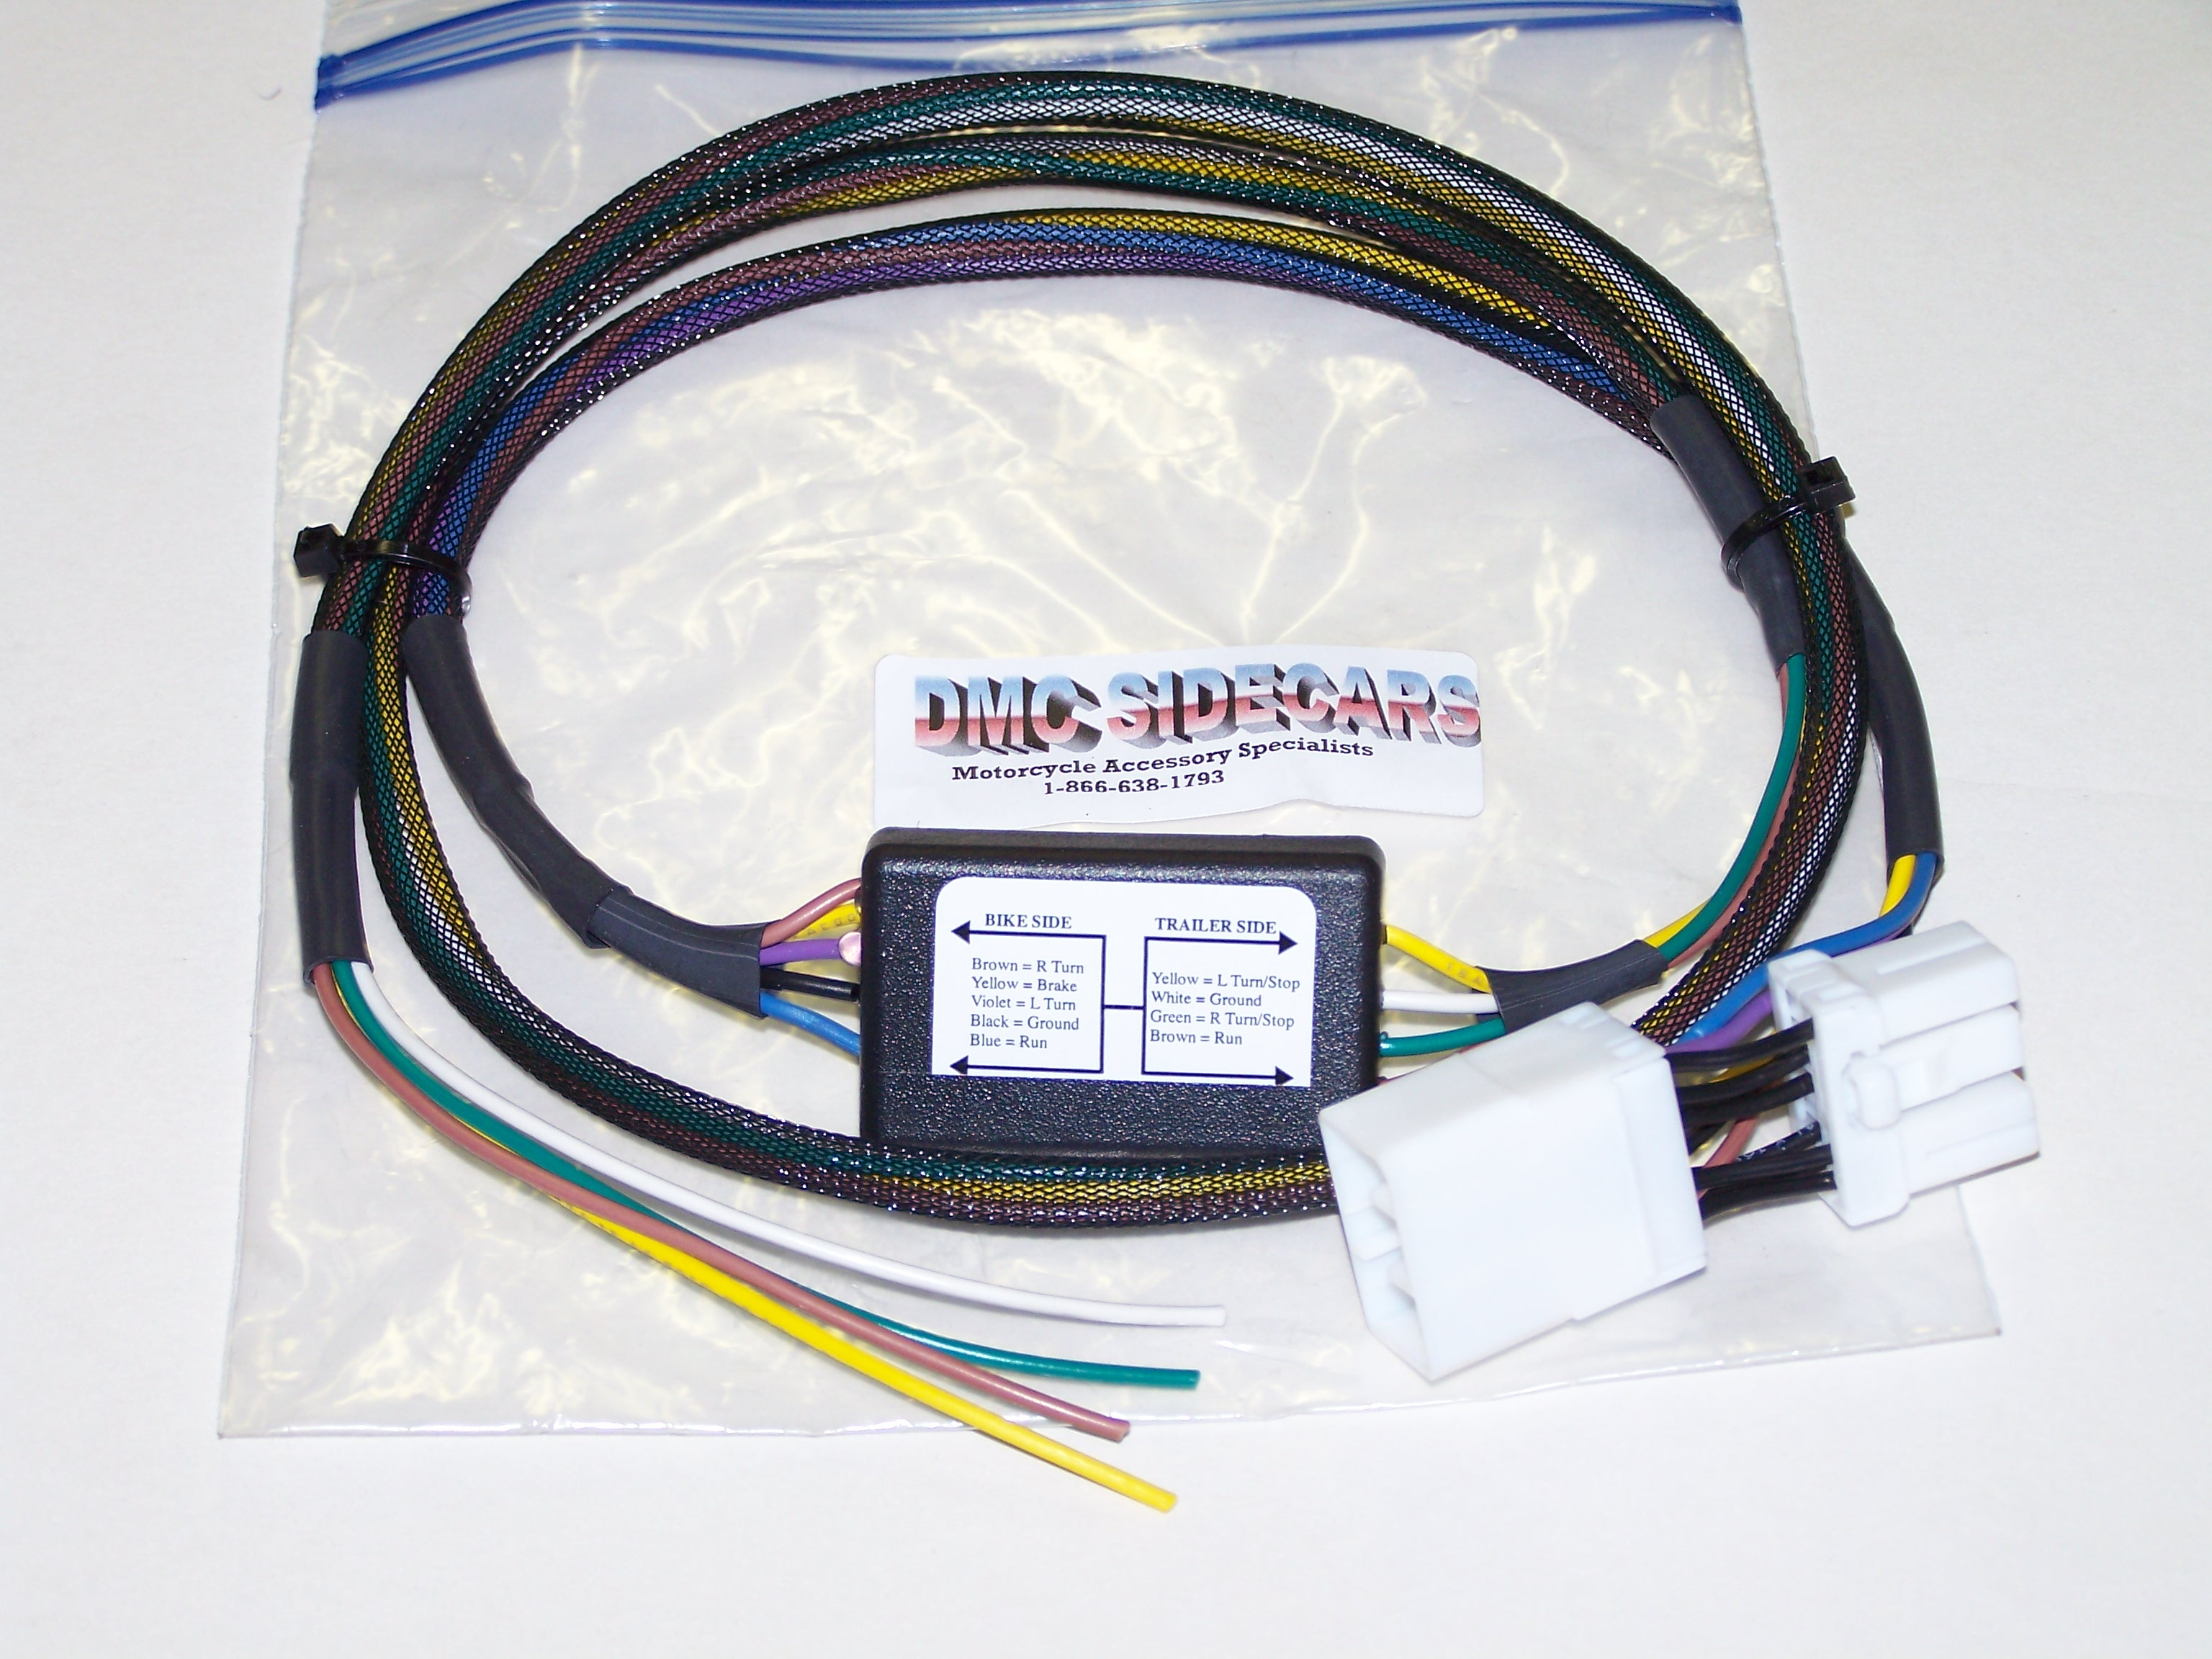 harley-davidson trike 5 to 4 wire convertor this basic wiring harness  automatically converts from a 5 wire system to a 4 wire system, saving the  headaches